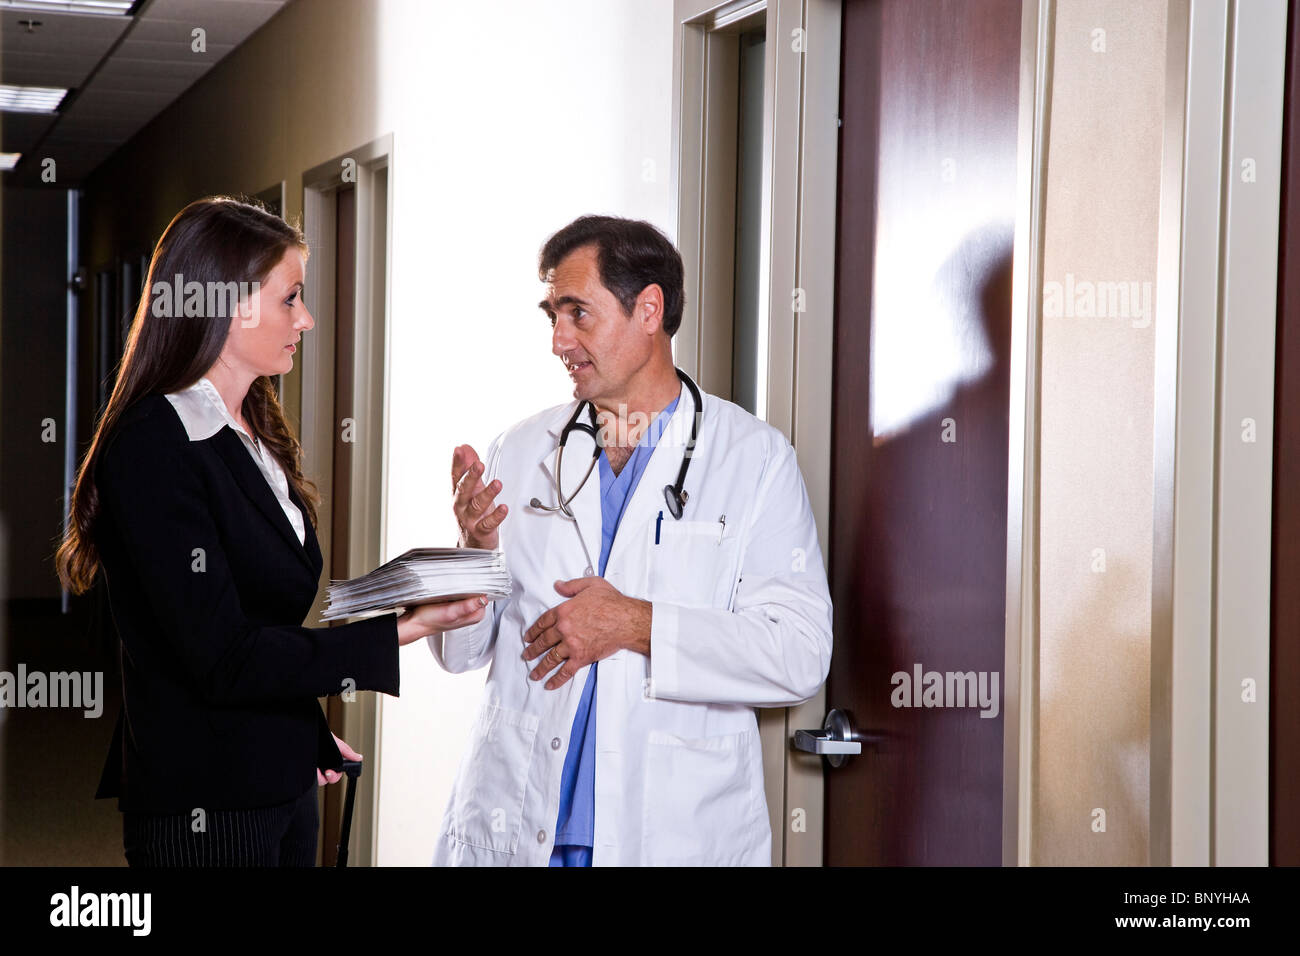 pharmaceutical rep stock photos pharmaceutical rep stock images doctor talking pharmaceutical s rep in office corridor stock image